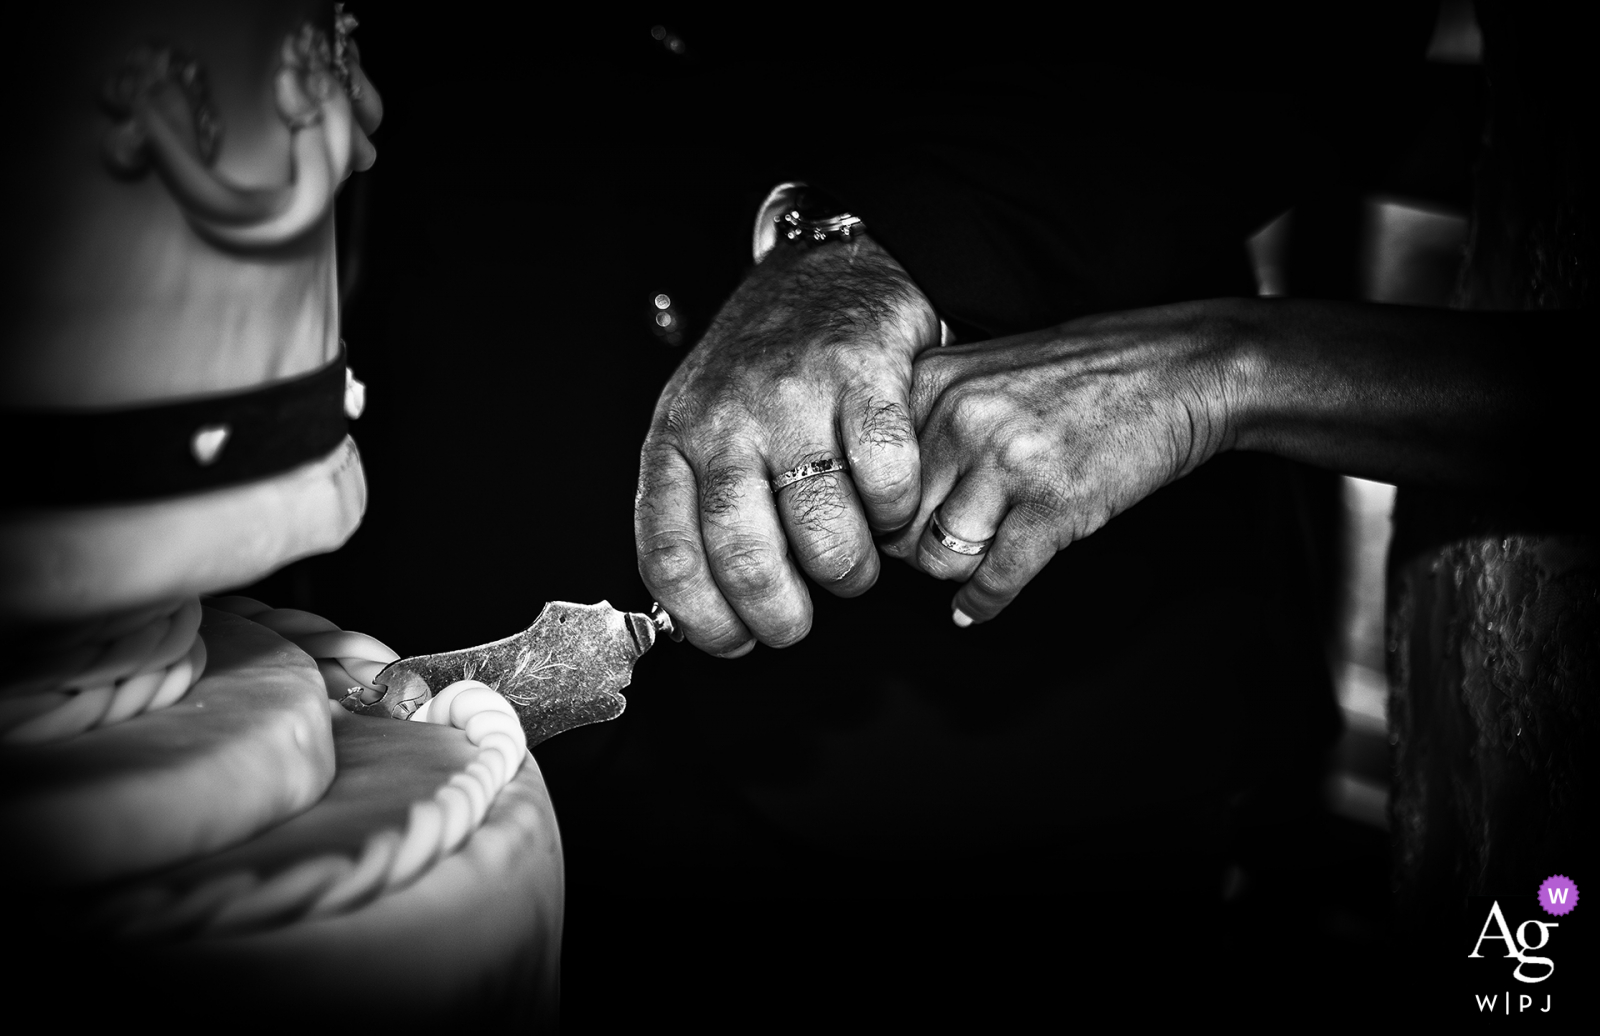 Rome, Italy fine art wedding cake cutting hands detail image